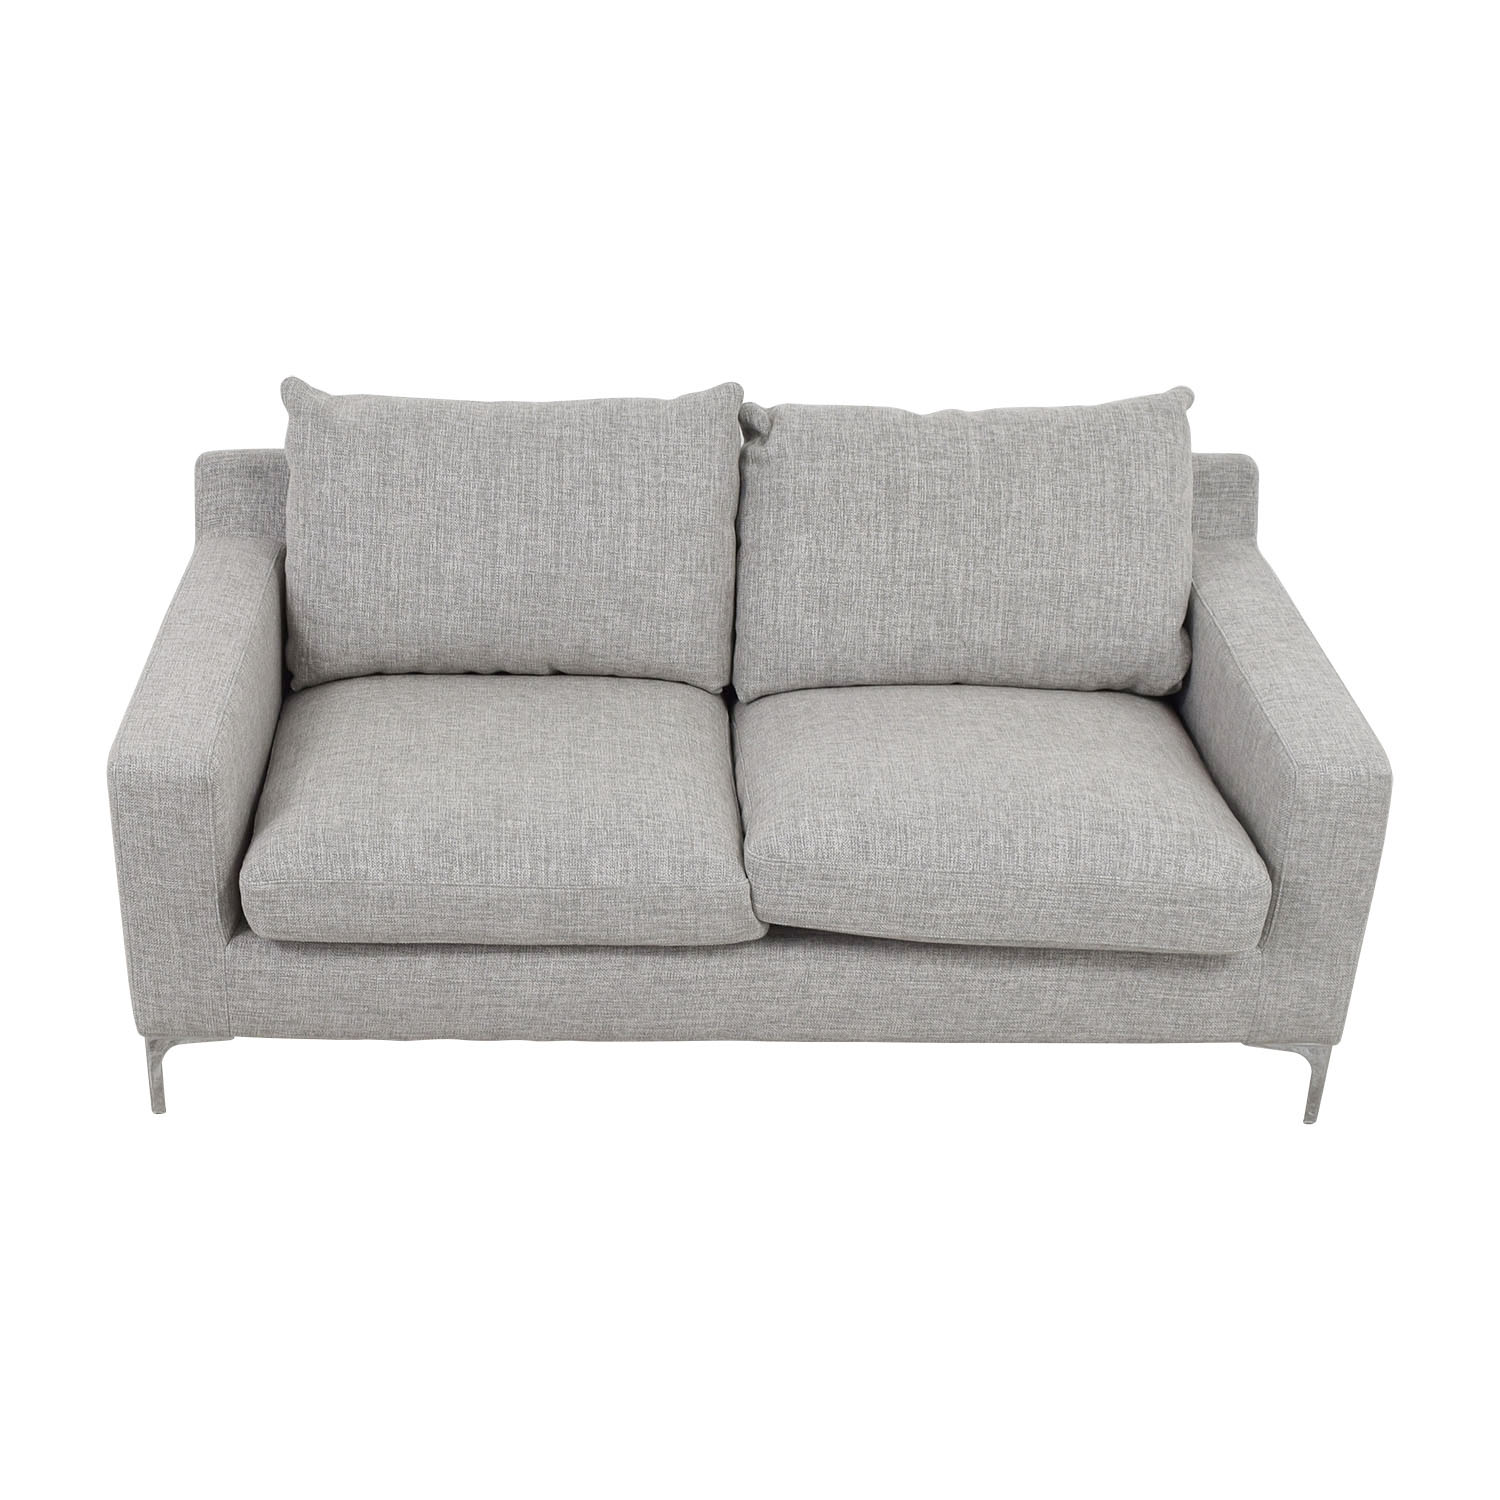 shop Sloan Grey Two-Cushion Sofa online